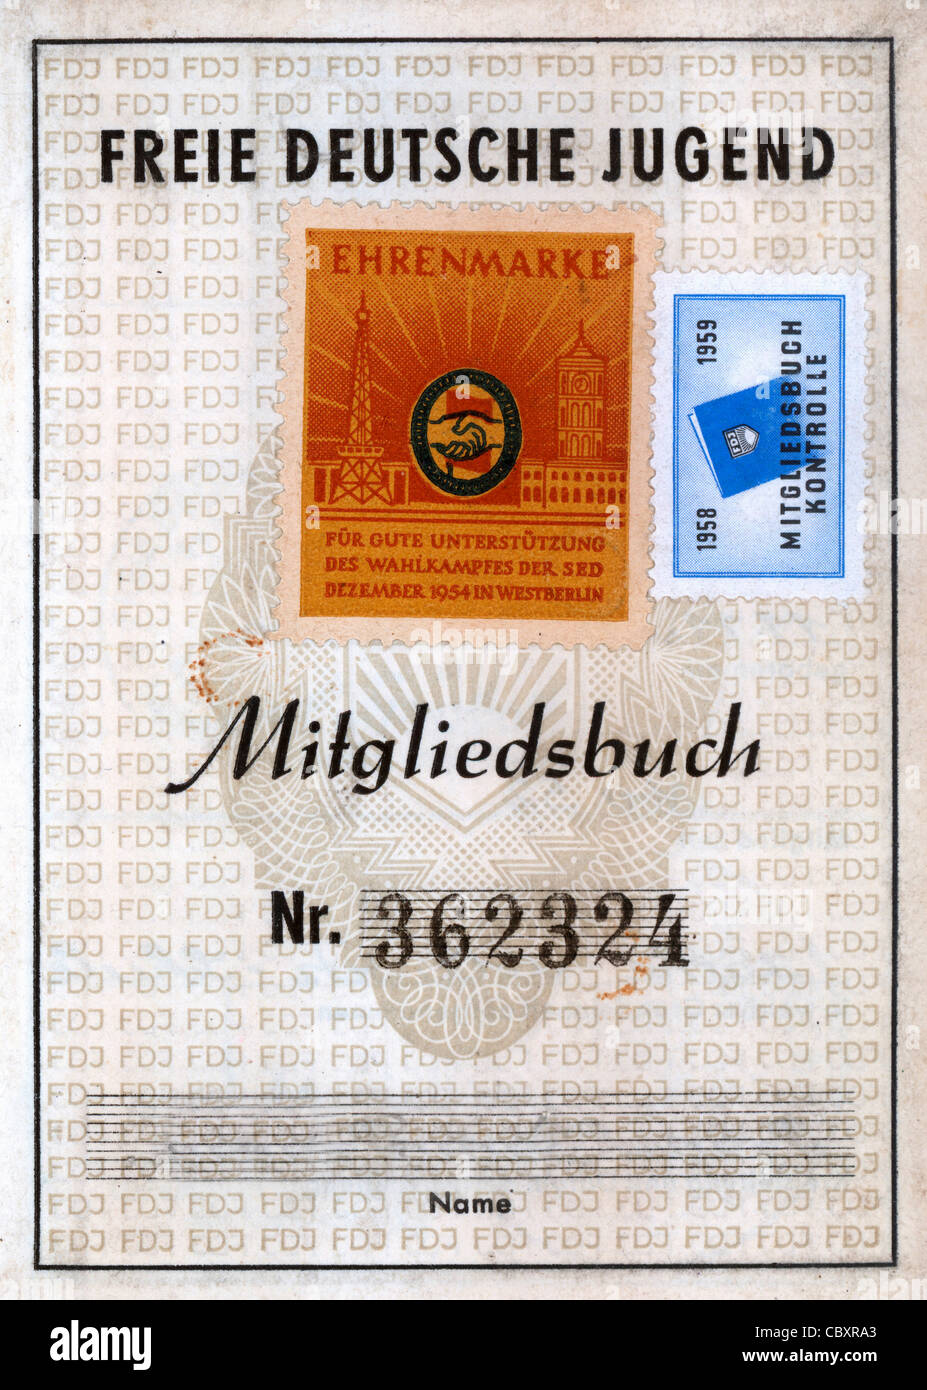 Member book of the GDR youth organization Free German Youth FDJ. Stock Photo